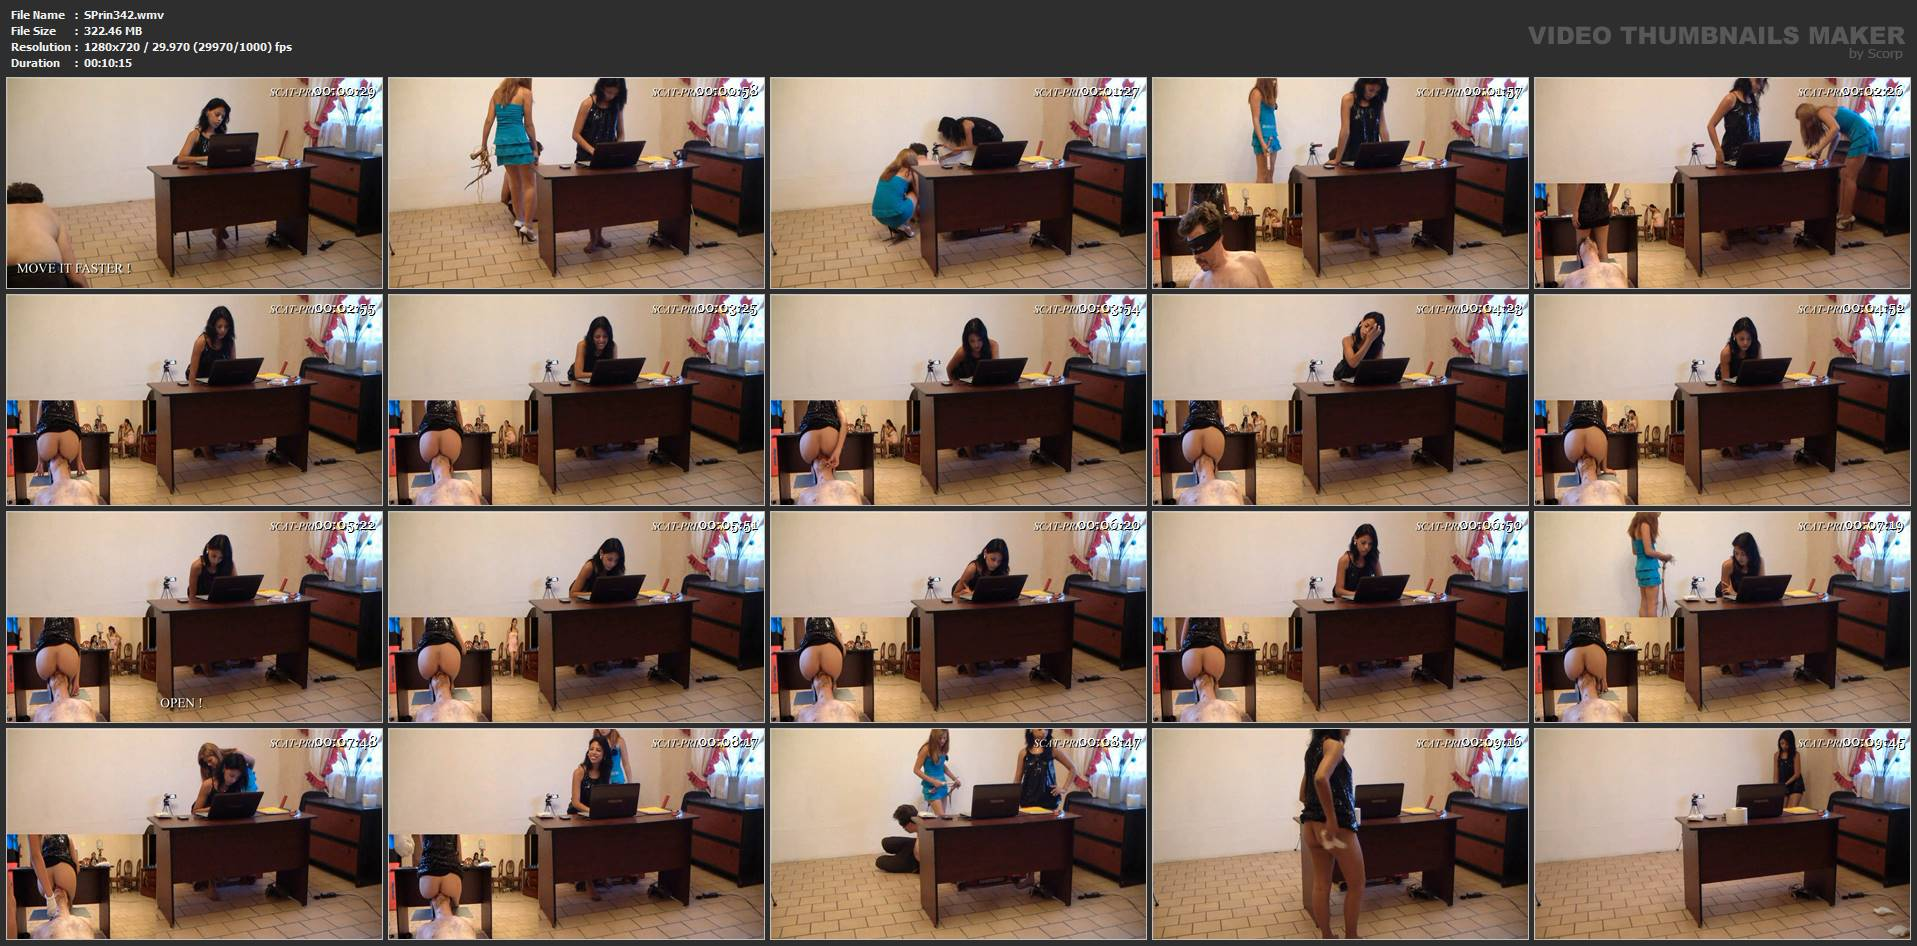 [SCAT-PRINCESS] Another Day in the Office Part 02 Diana [HD][720p][WMV]